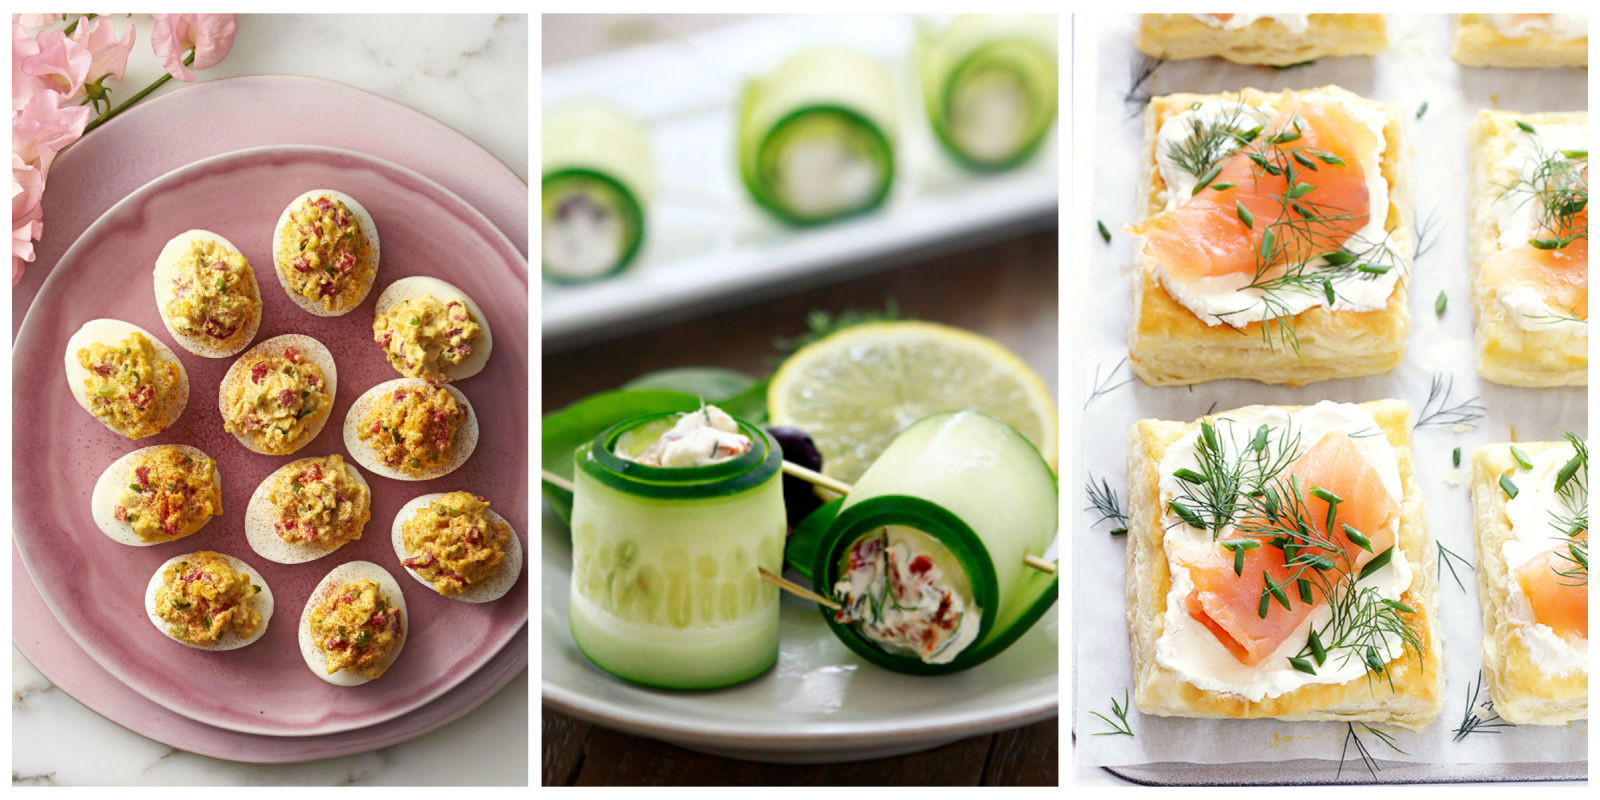 Best Easter Appetizers  18 Easy Easter Appetizers Best Recipes for Easter Hors D